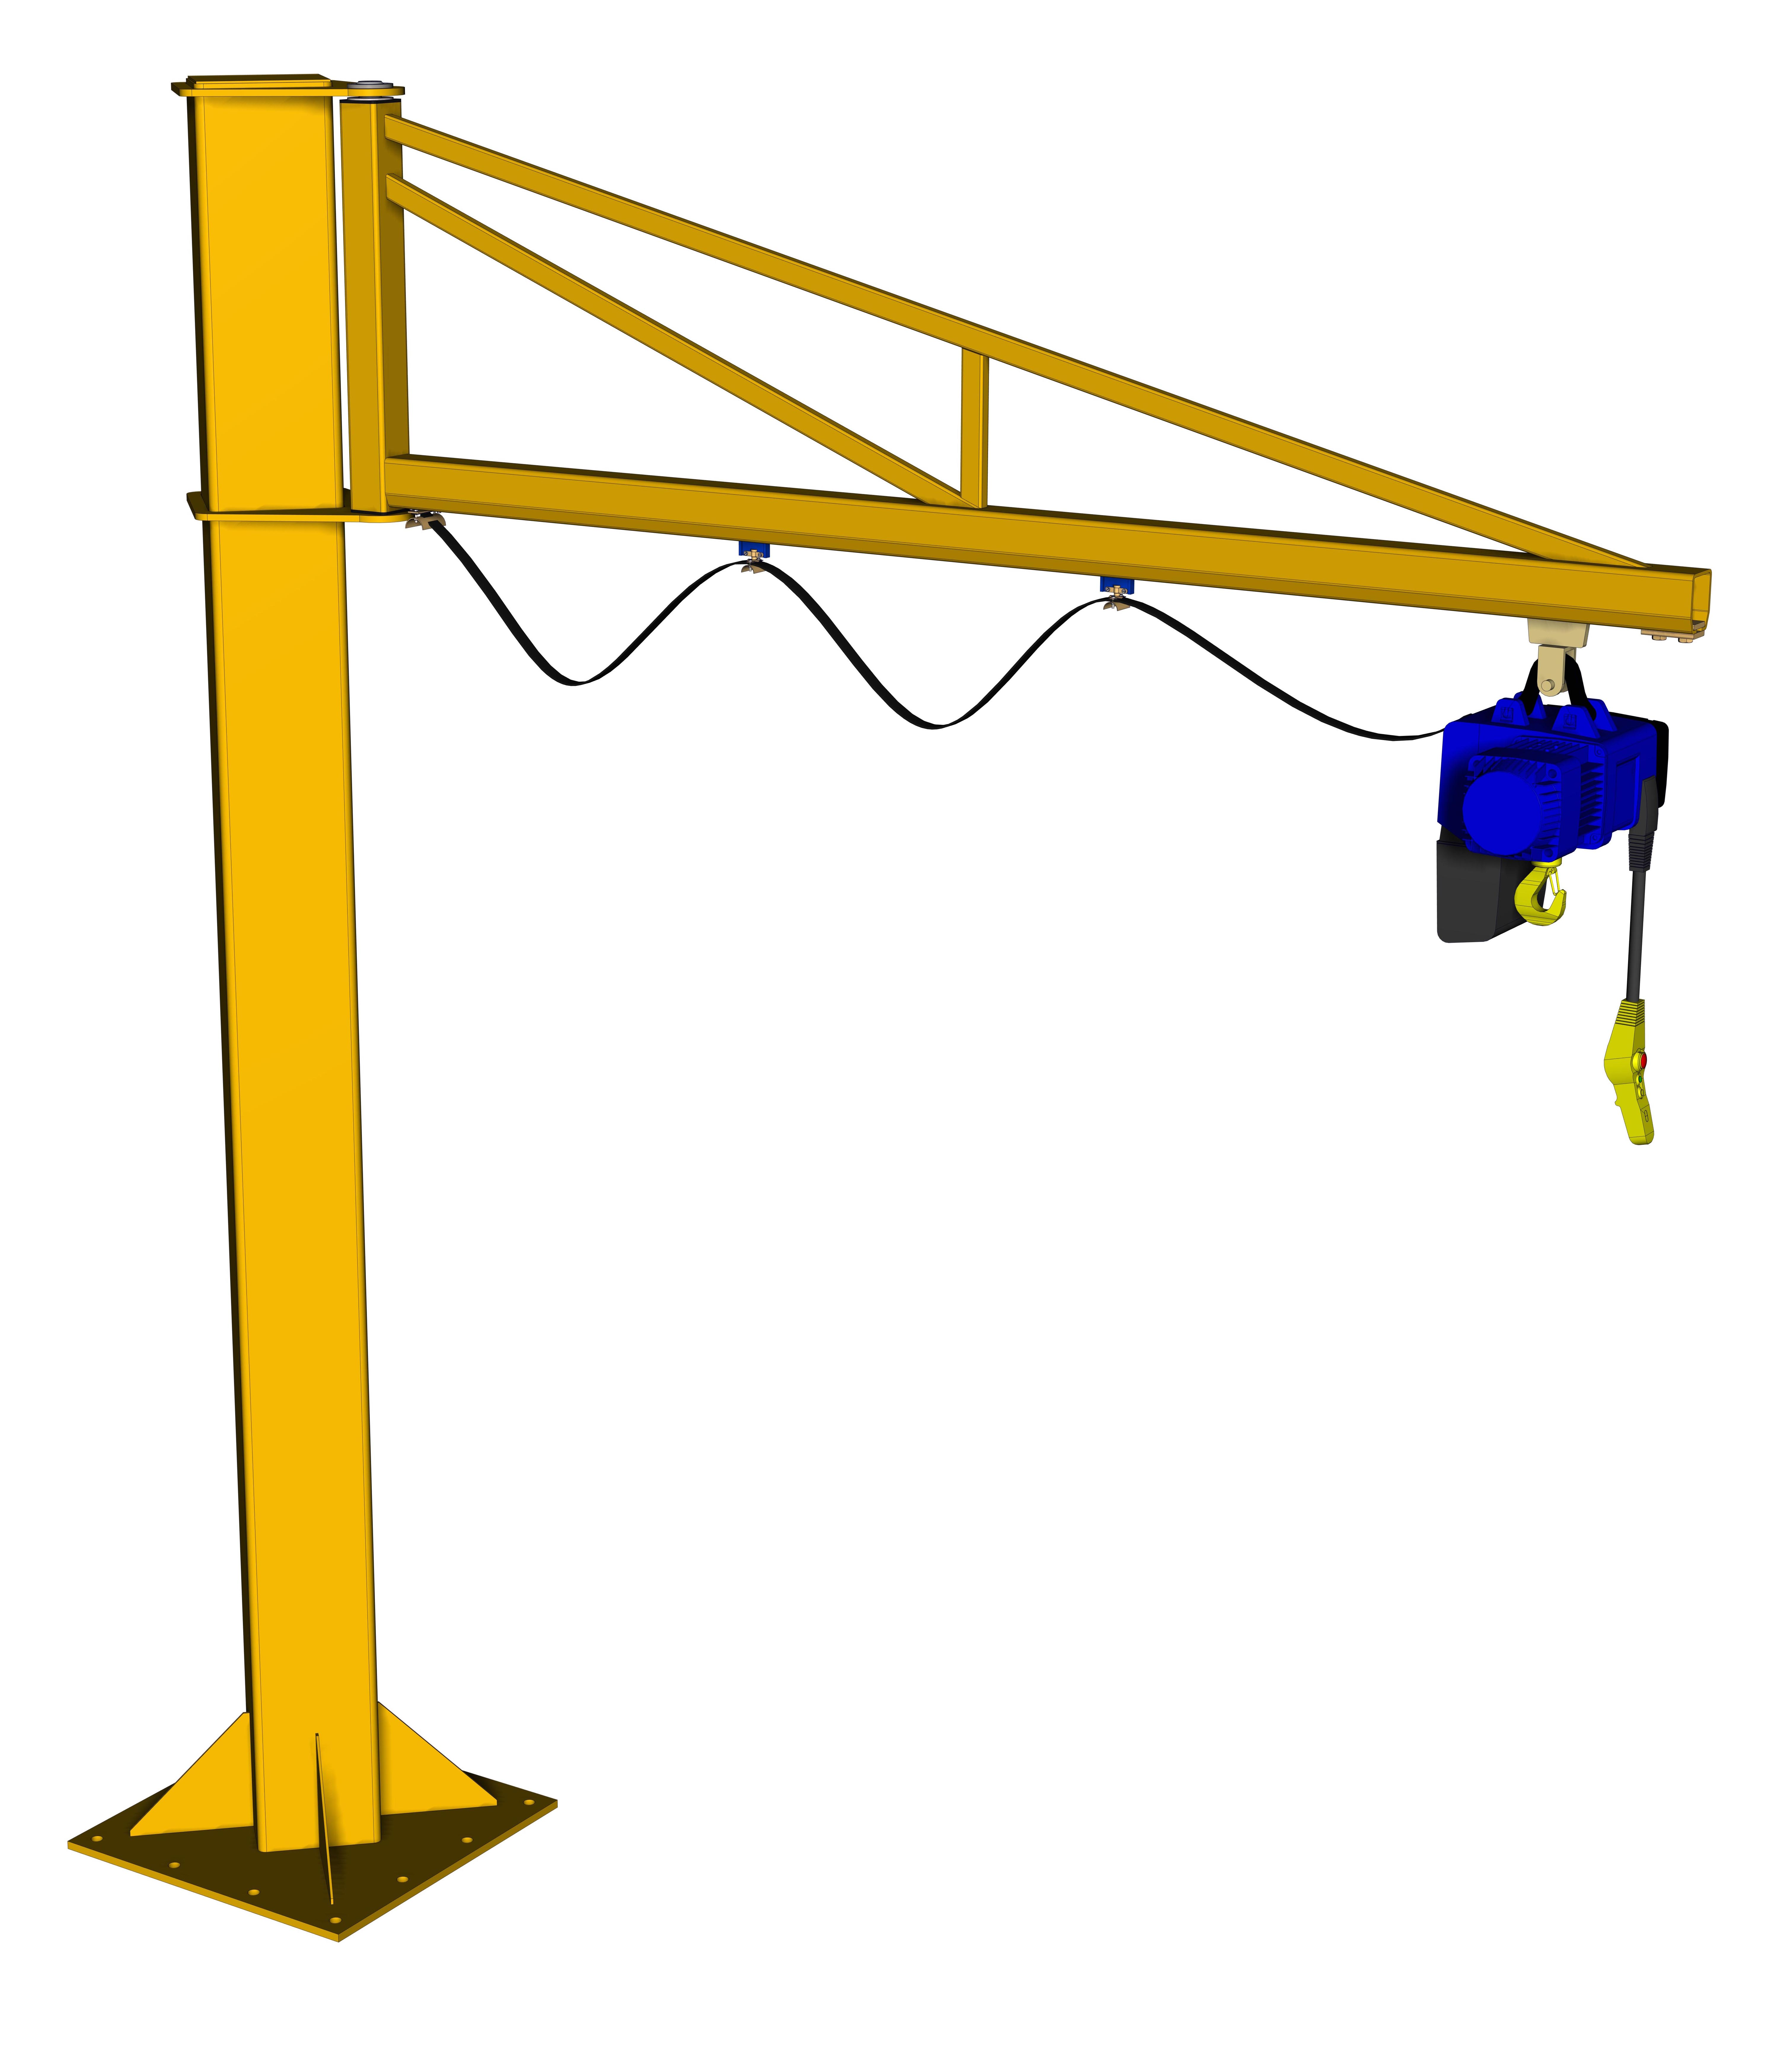 Jib Cranes Images : Free standing jib crane price only ?poa call